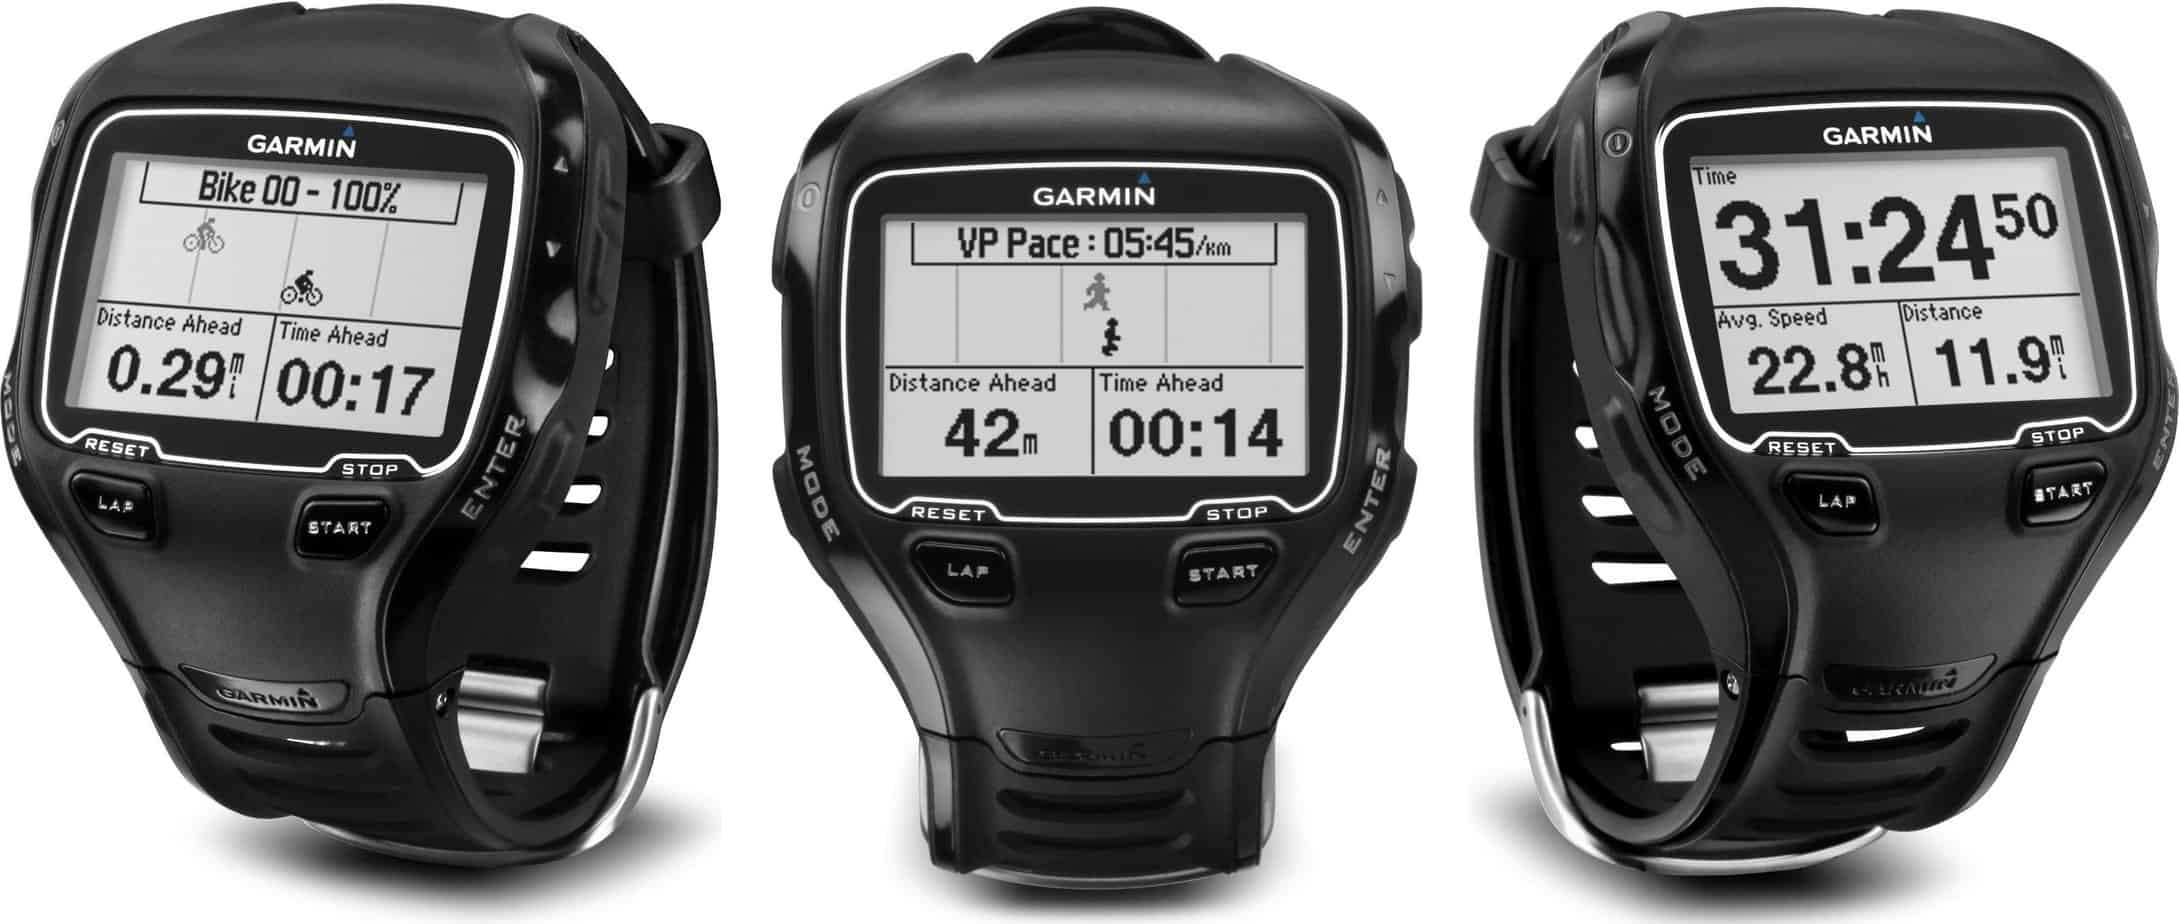 Garmin Forerunner 910xt The Wired Runner